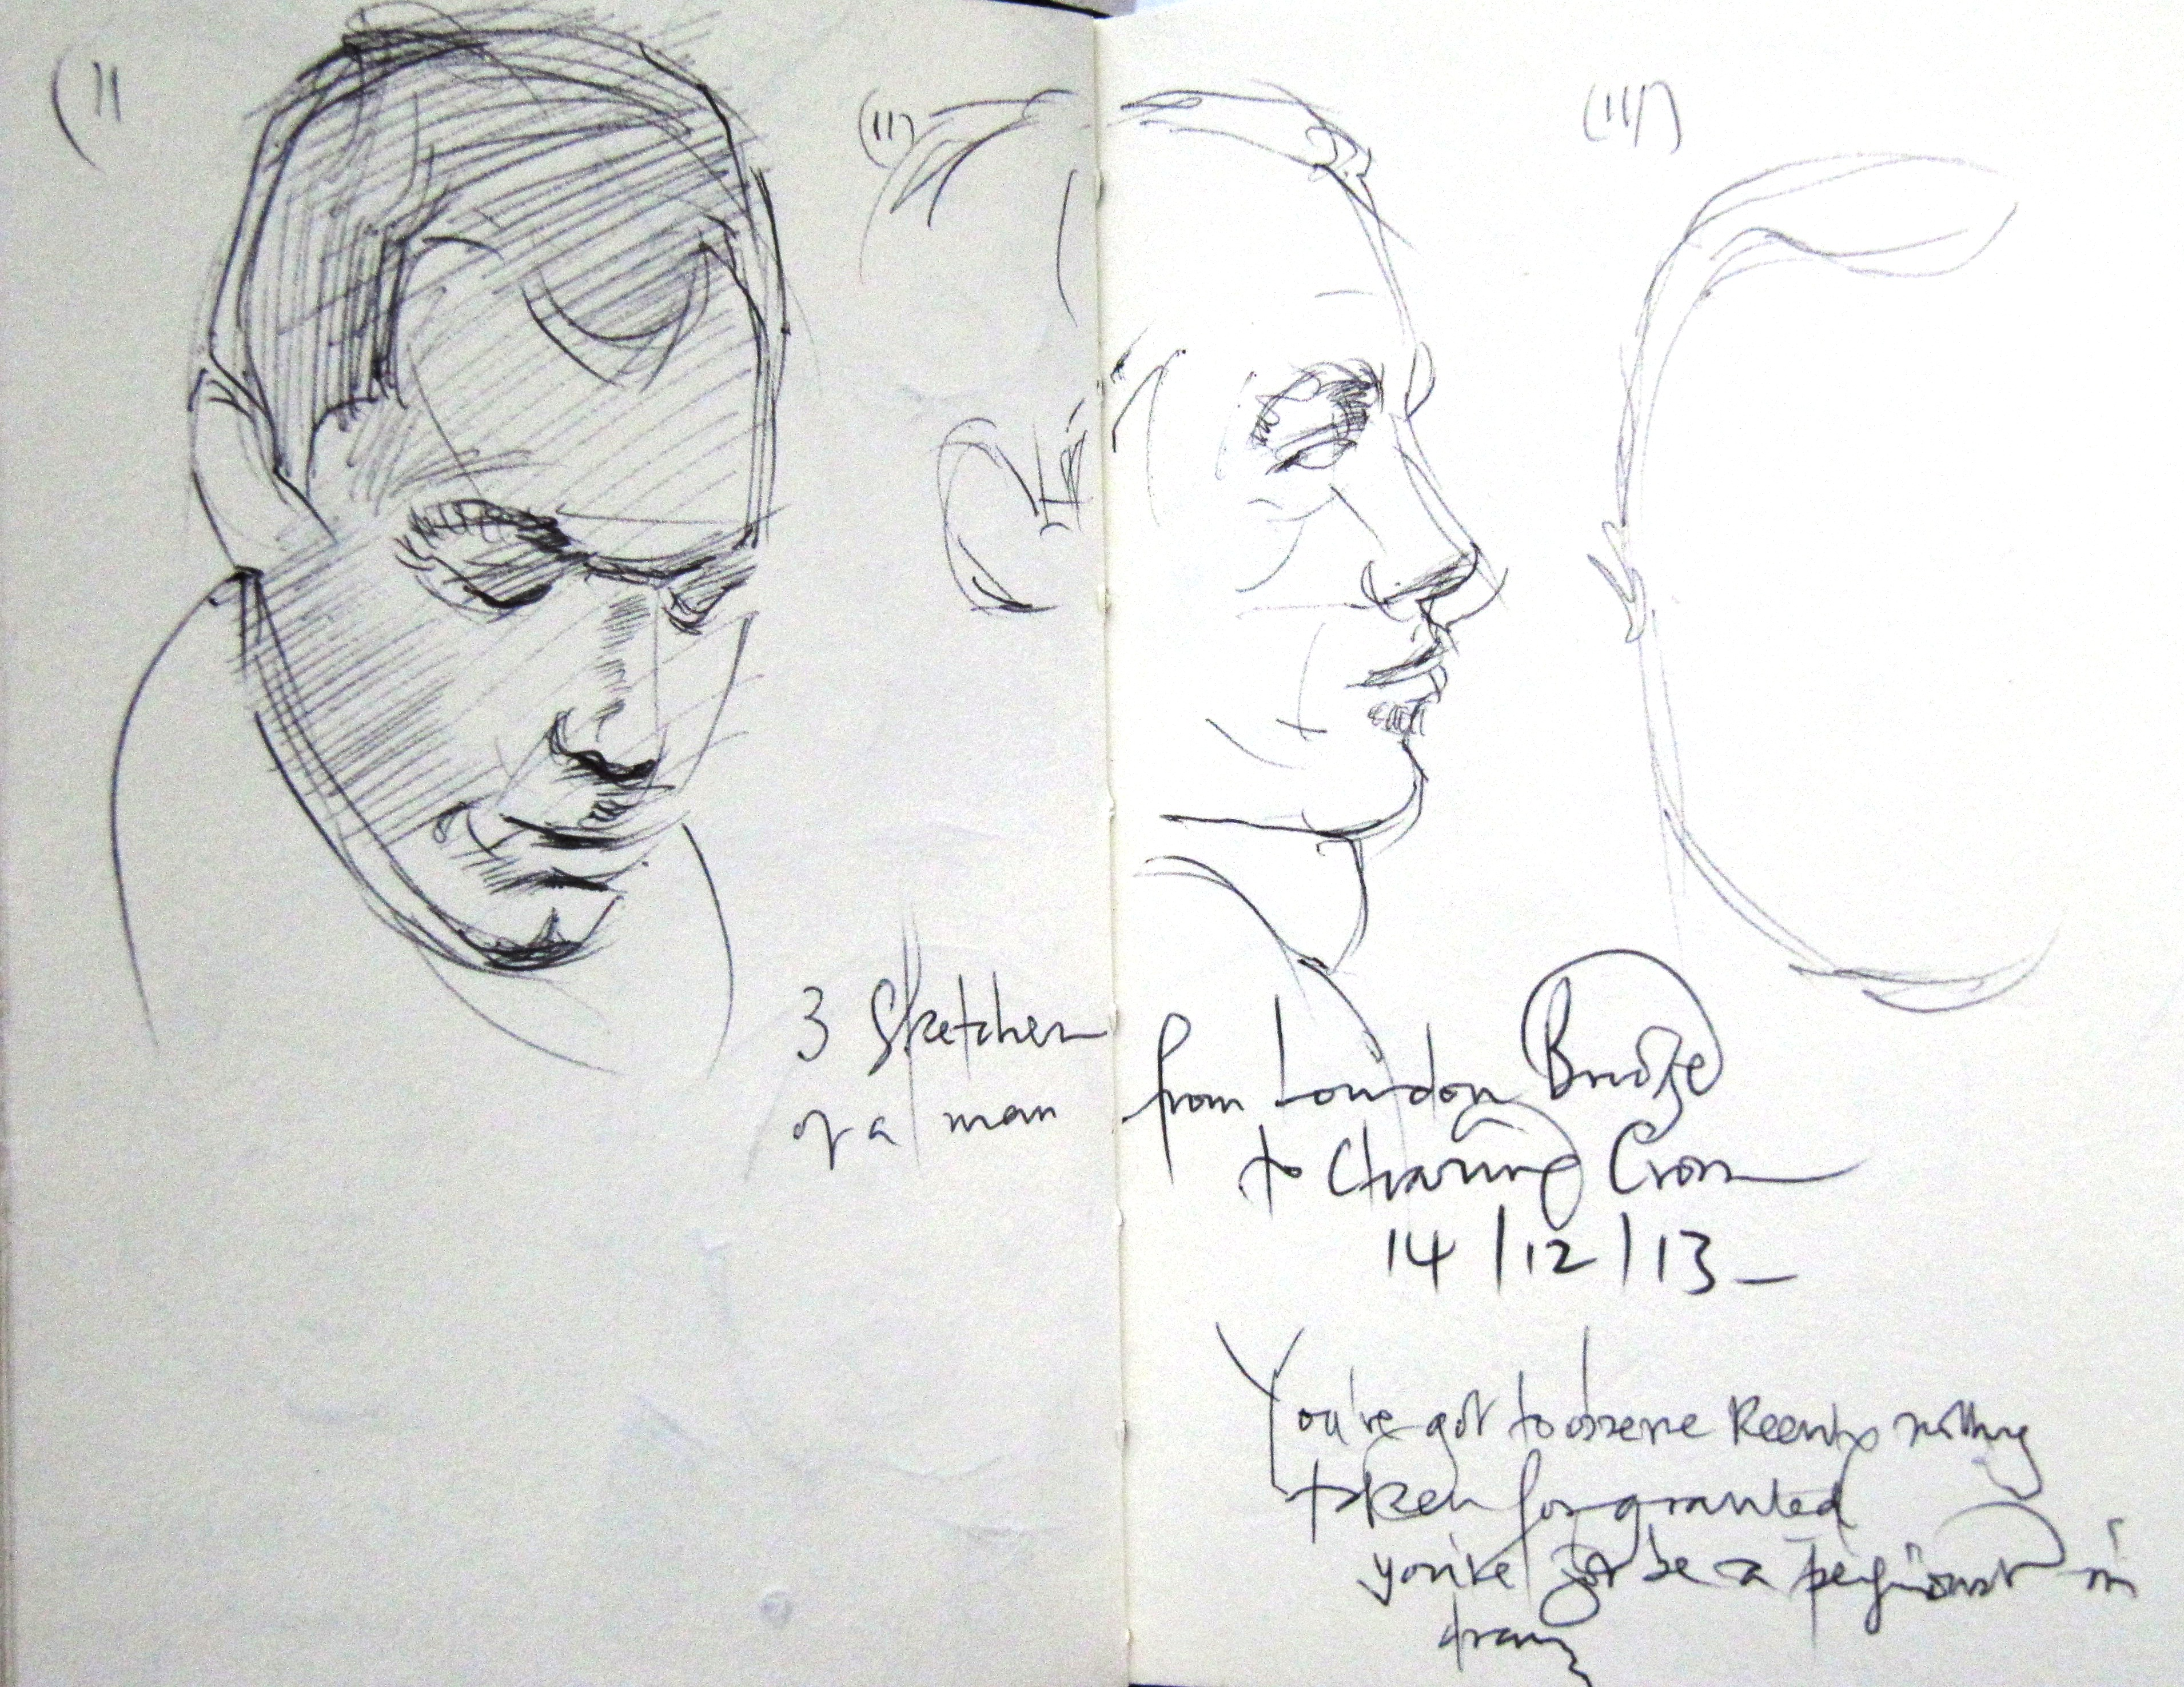 3 sketches of the same man